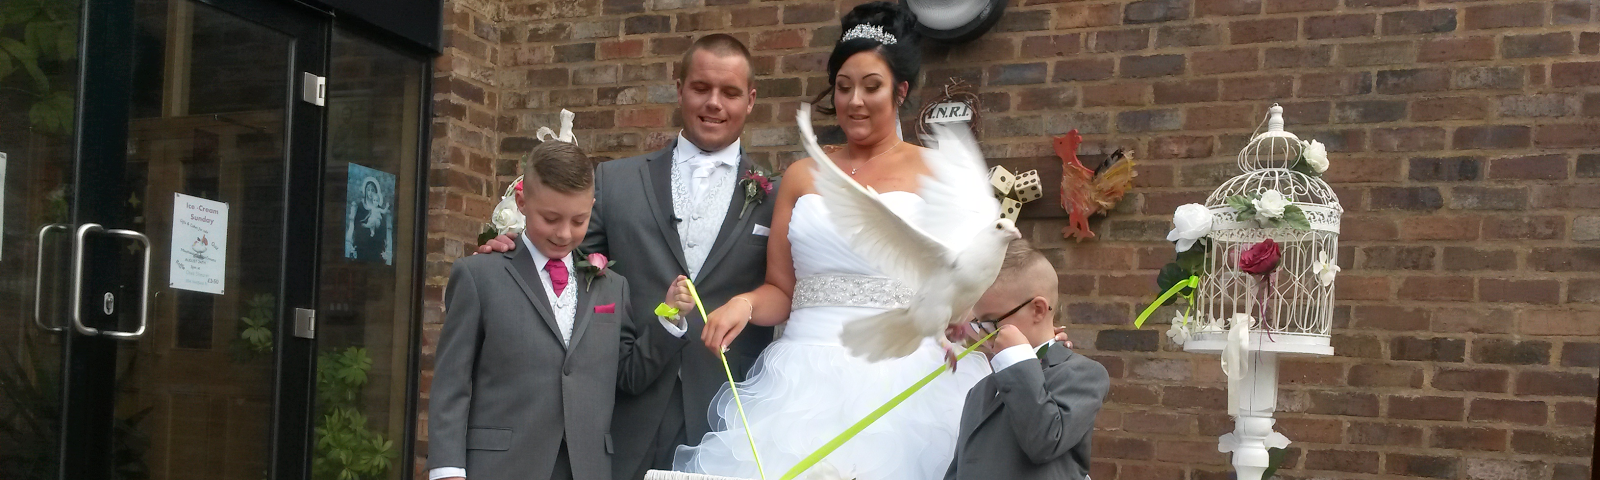 White Dove Release for Weddings in Liverpool